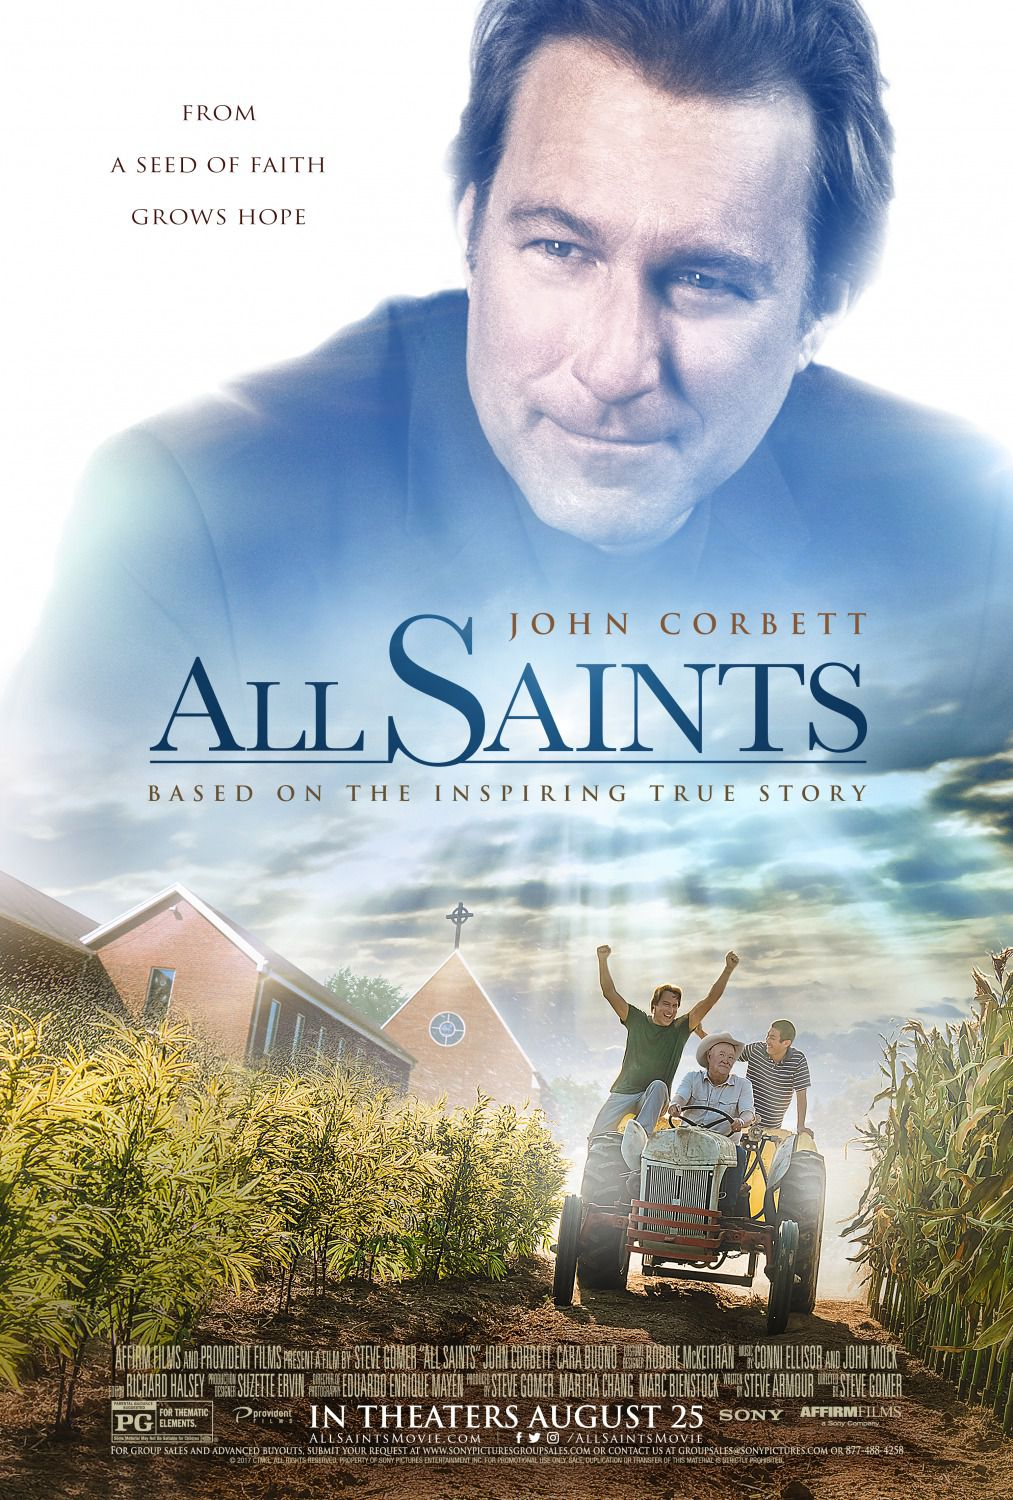 All Saints - 2017 film - Cara Buono - John Corbett - Barry Corbin - David Keith - poster